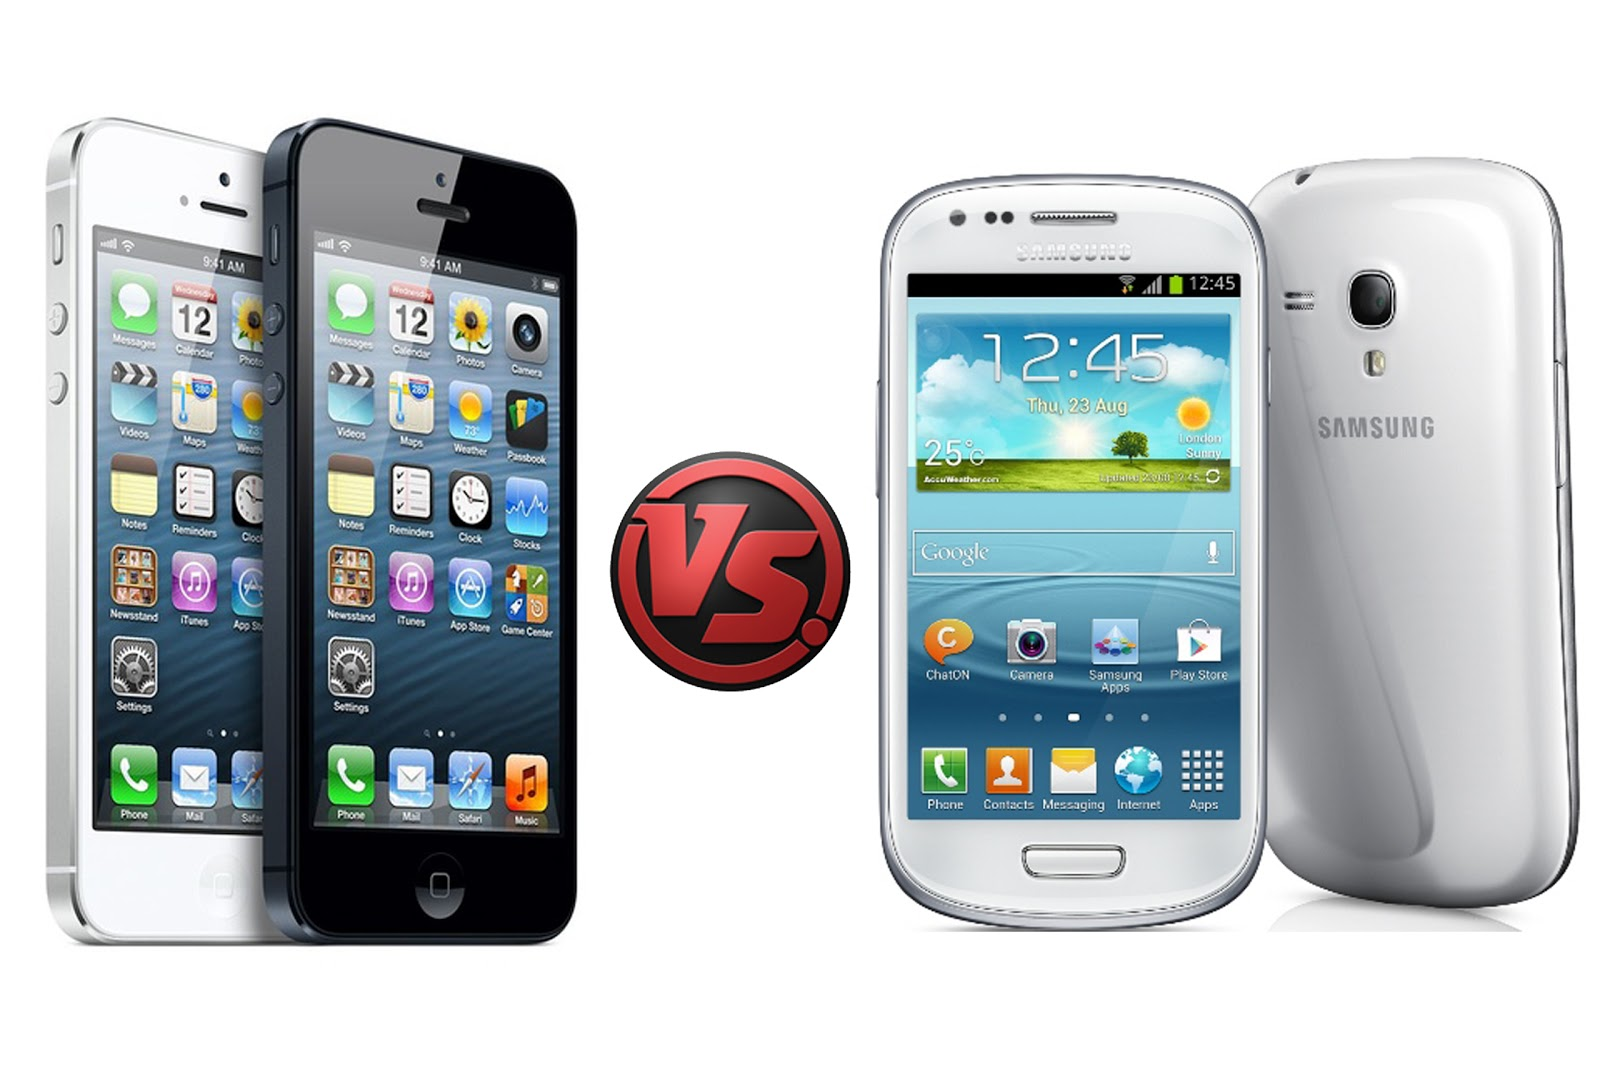 a comparison of samsung s3 and iphone 5 Apple iphone se vs samsung galaxy s3 – phone specs comparison which phone is better, the apple iphone se or the samsung galaxy s3 this our samsung galaxy s3 vs apple iphone se comparison compare apple iphone se vs samsung galaxy s3 full specifications side by side to see which phone is better you can [.